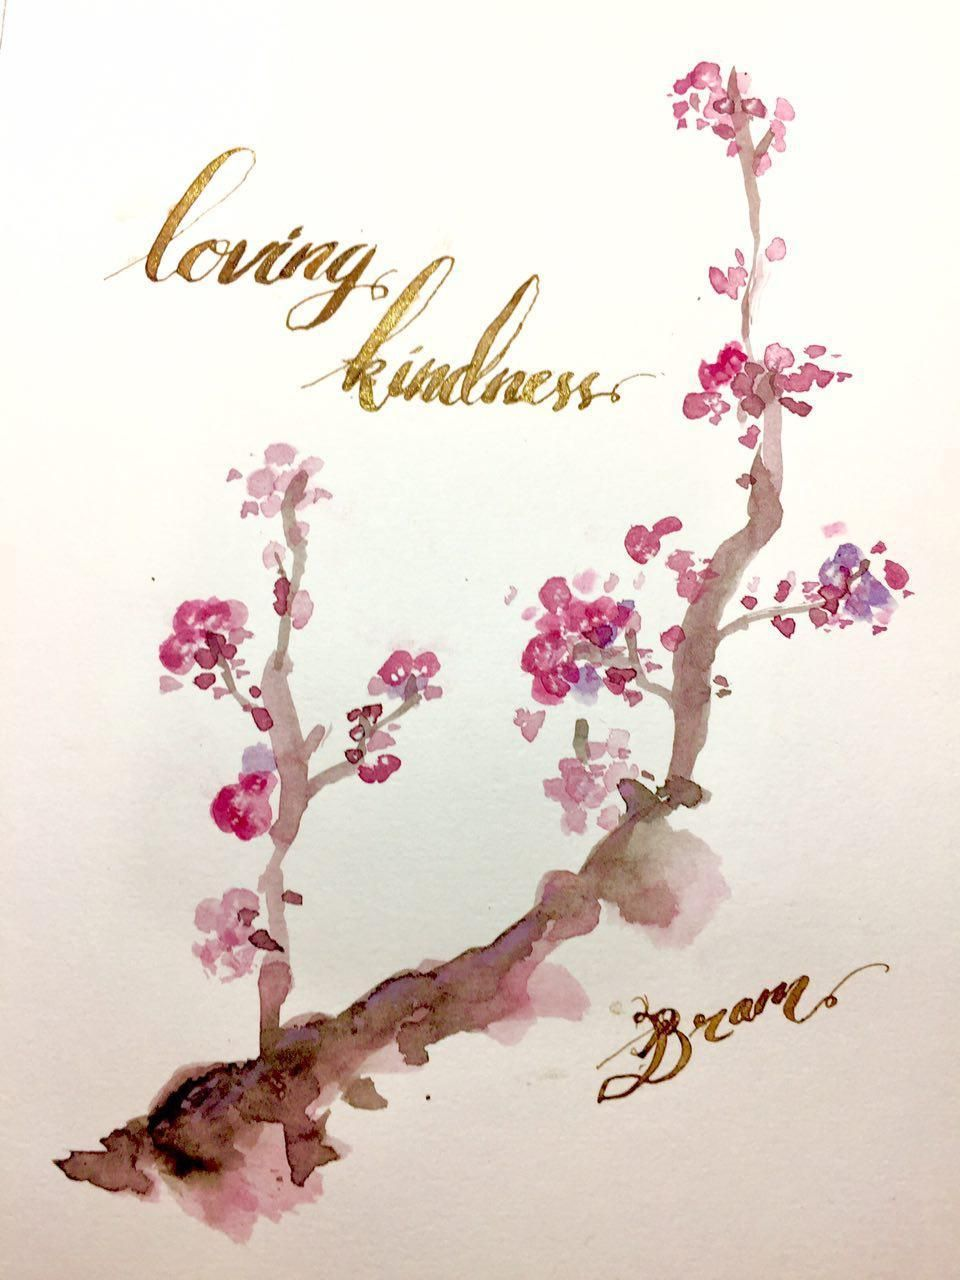 Loving Kindness  - image 2 - student project